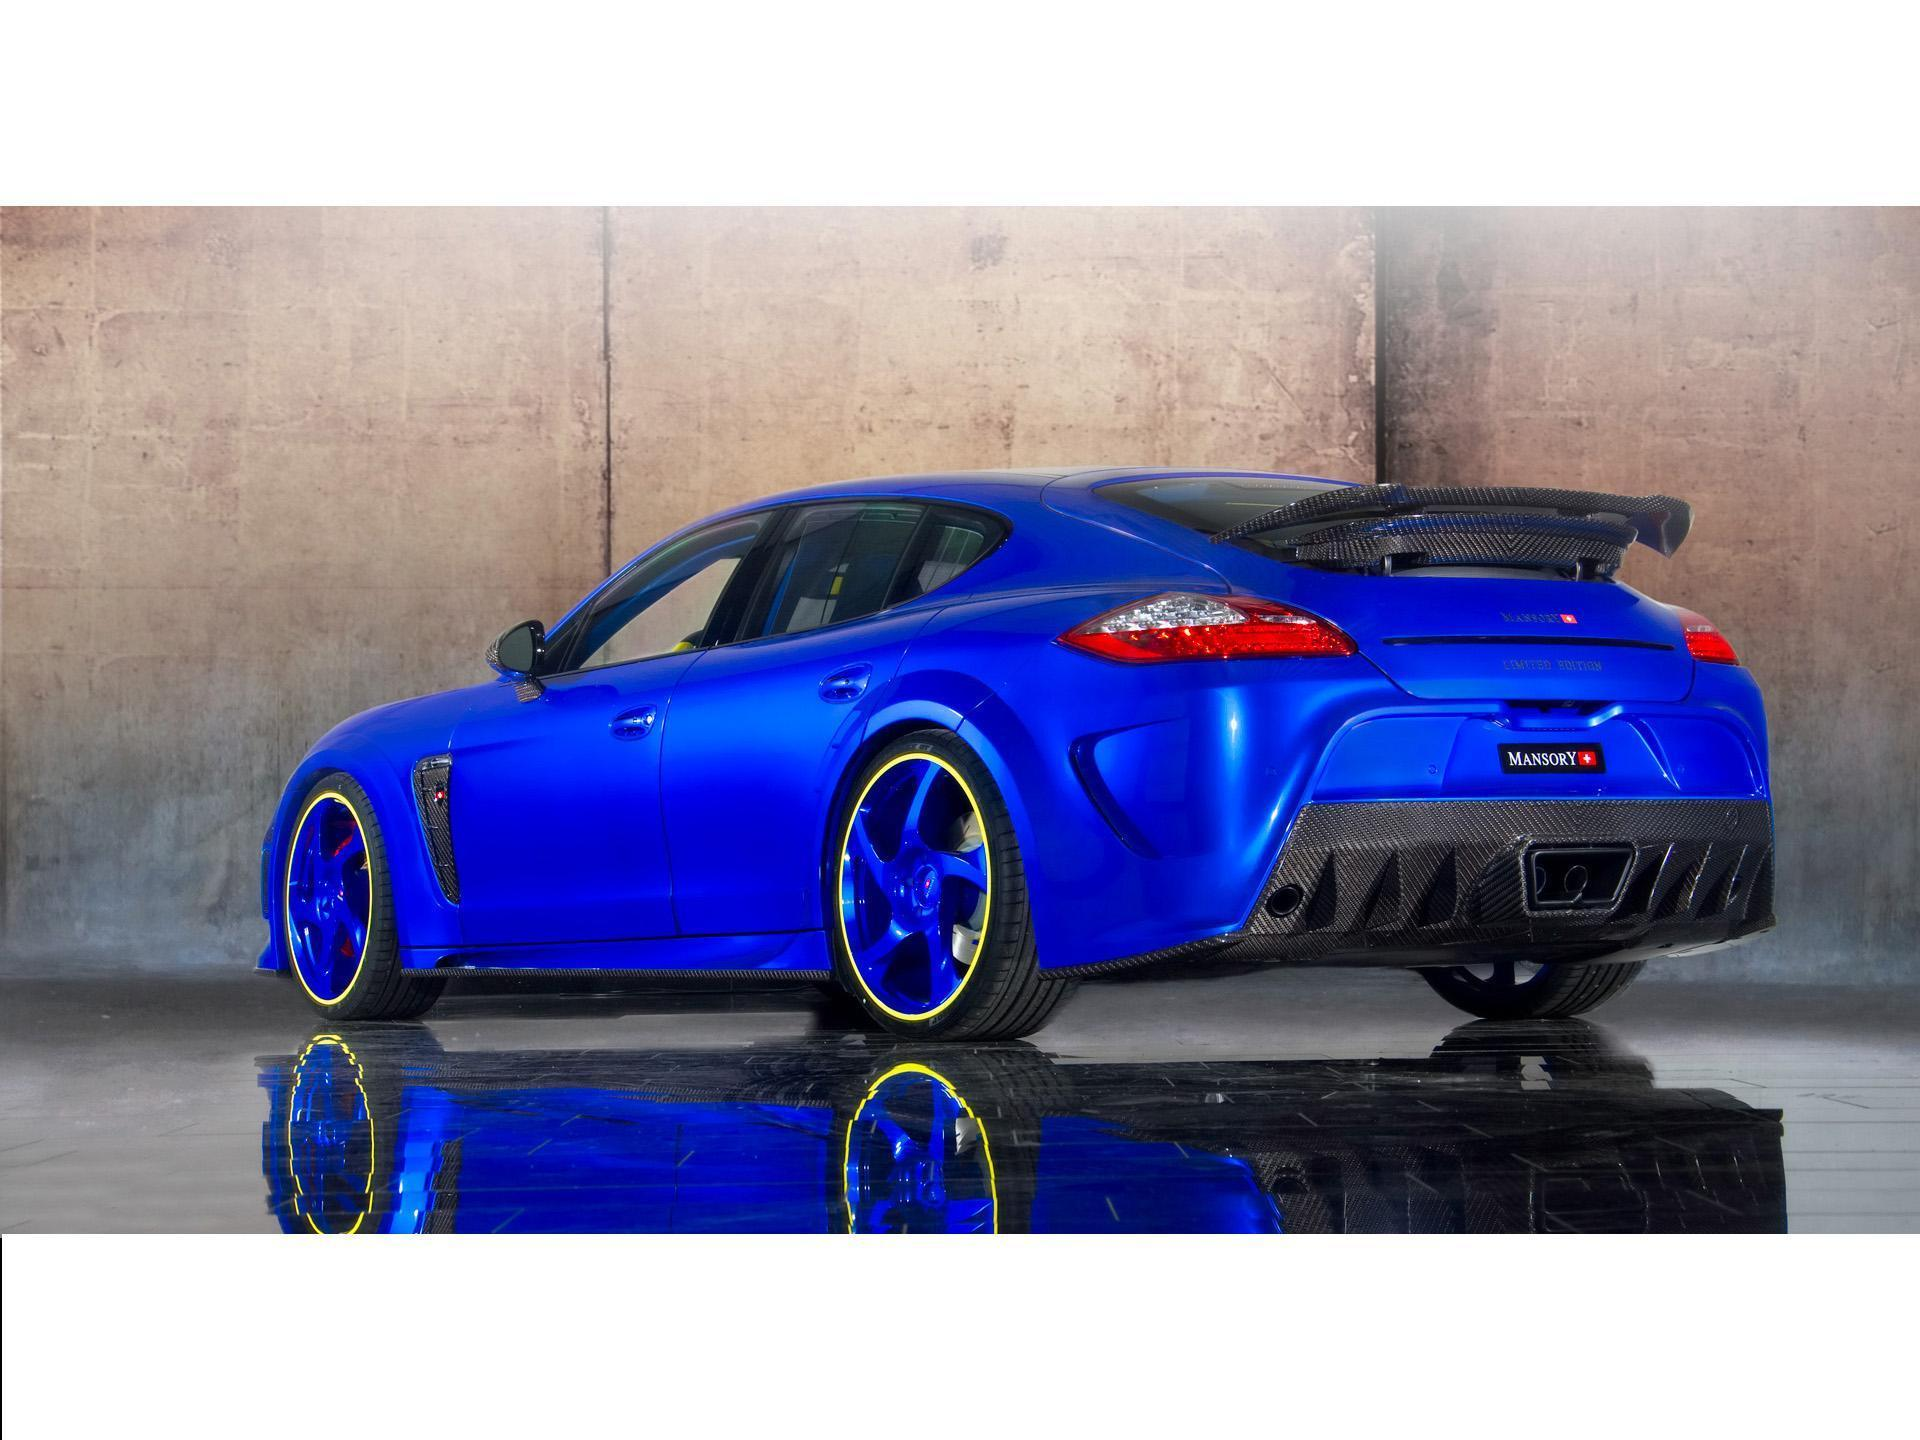 Mansory Porsche Panamera Turbo Porsche  15095072 Fanpop HD Wallpaper